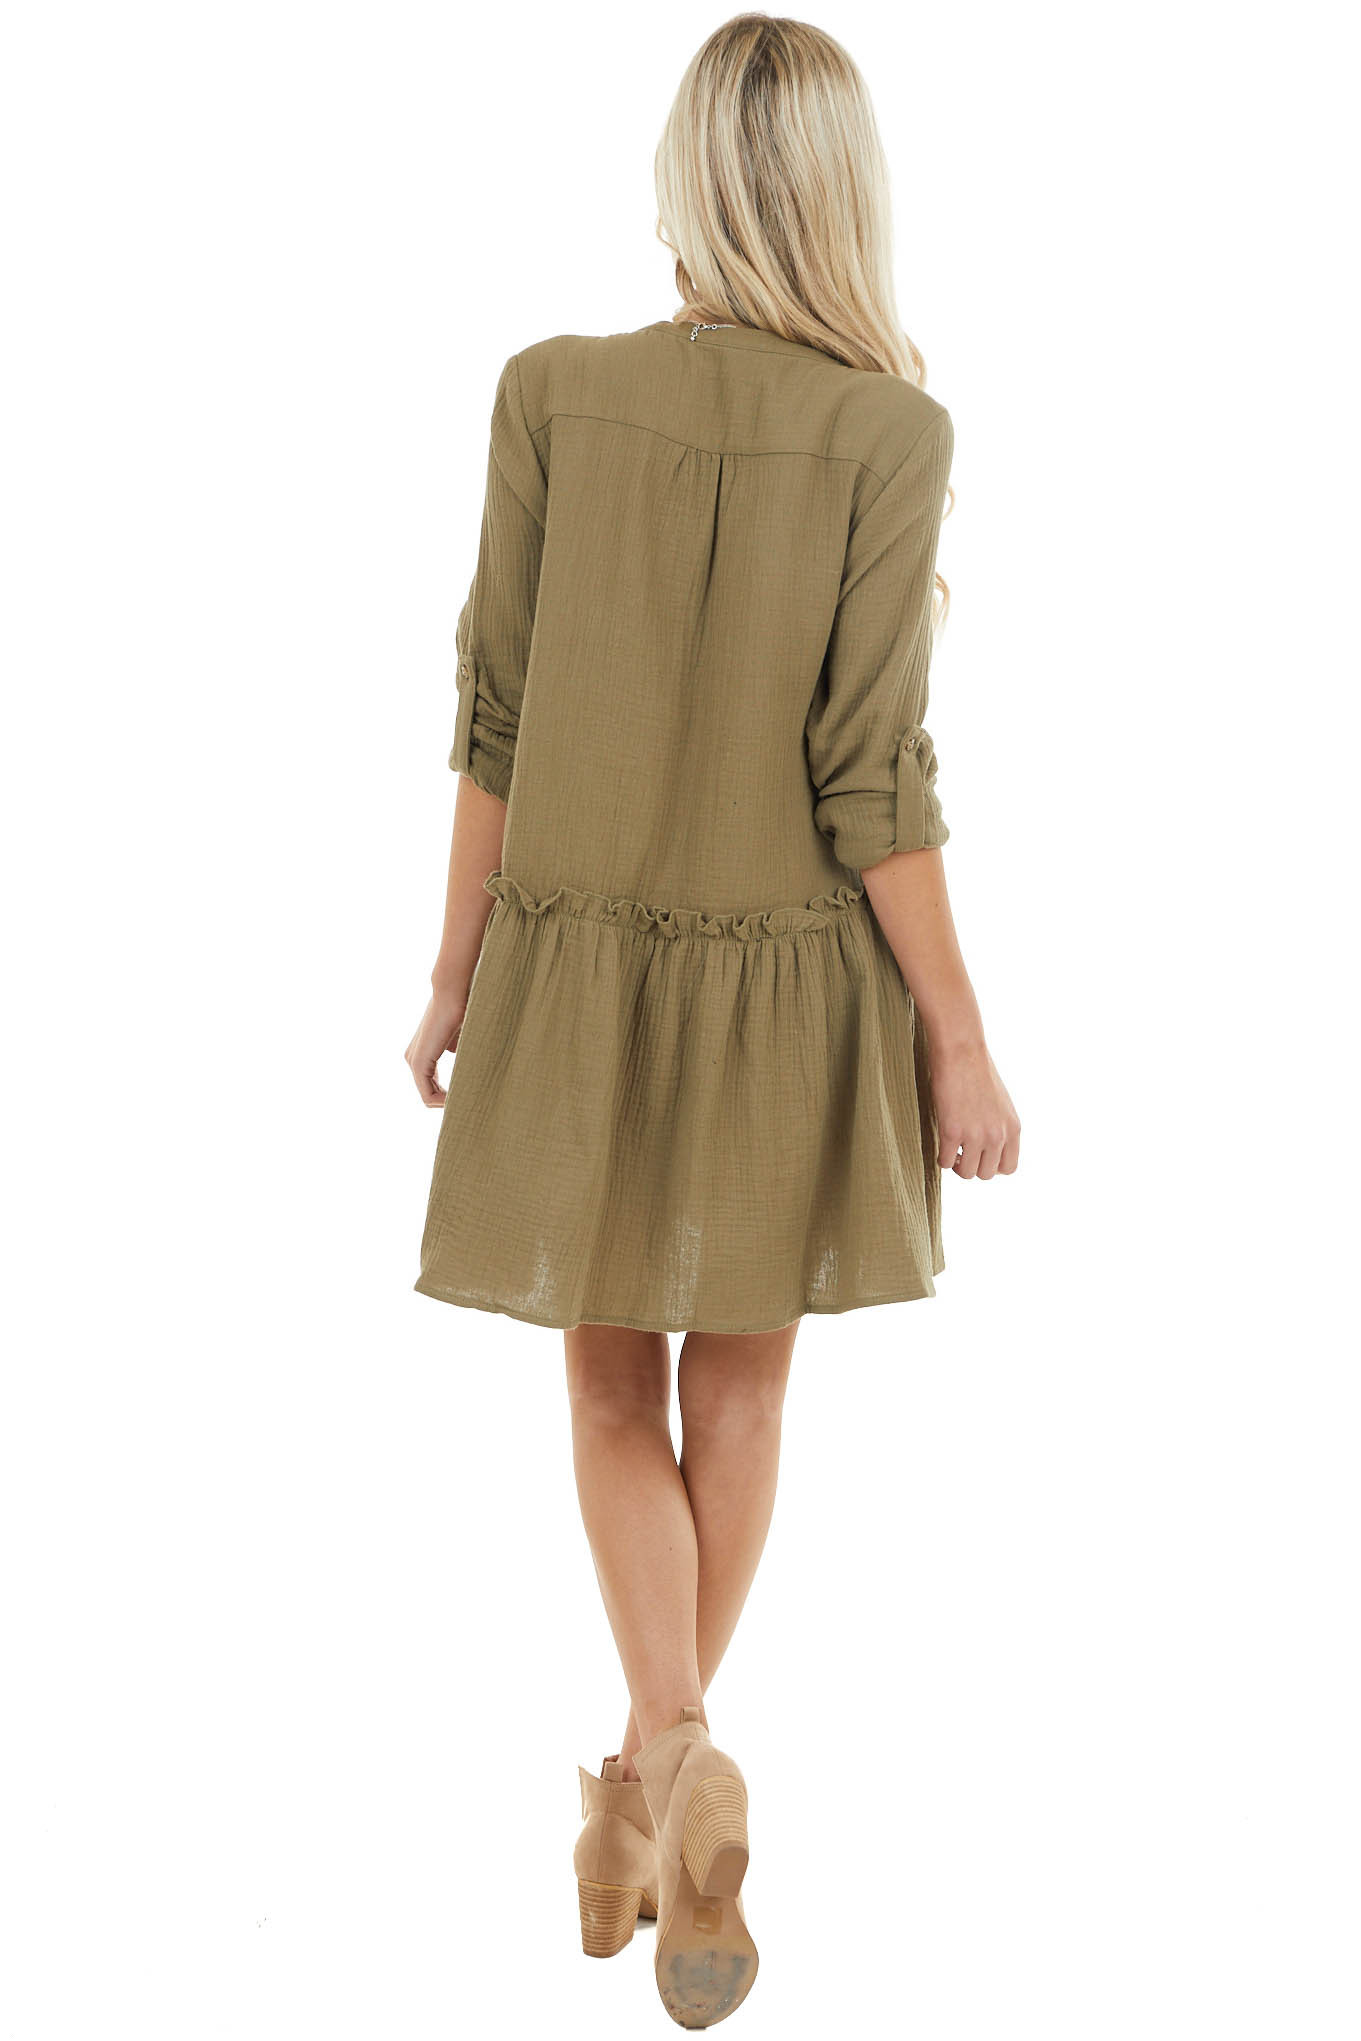 Olive Button Down Peplum Mini Dress with Chest Pockets